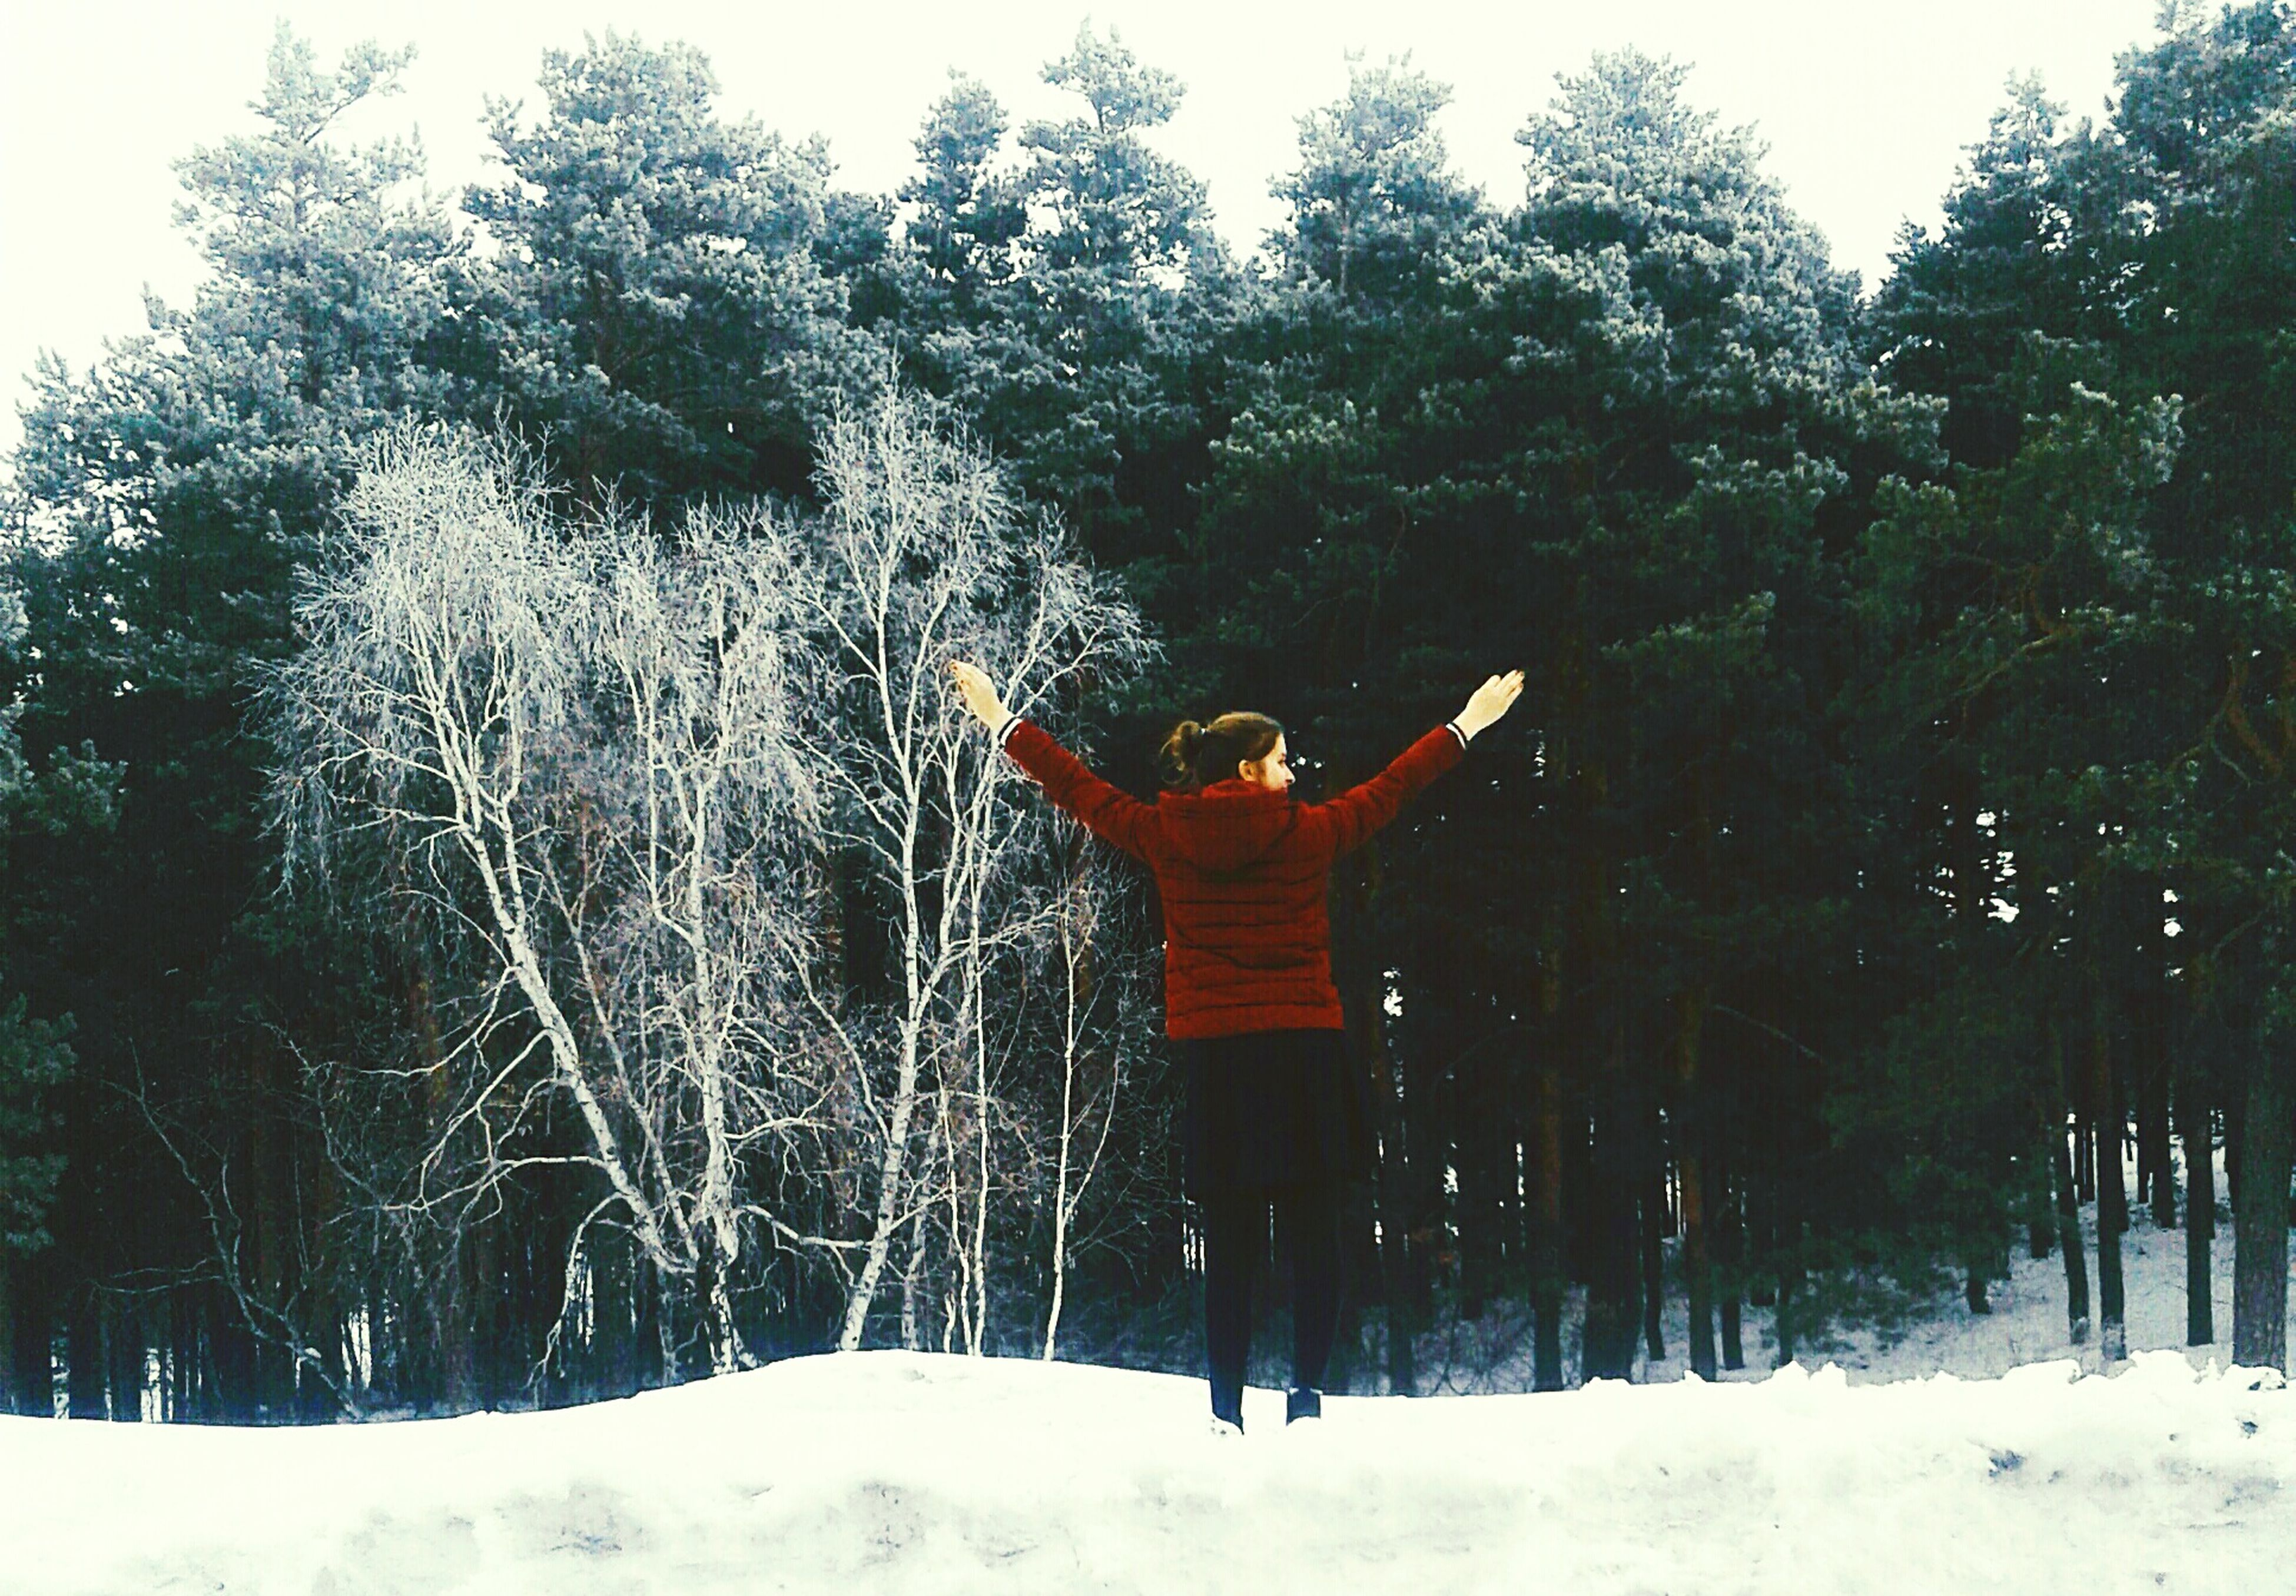 winter, tree, rear view, one person, cold temperature, leisure activity, real people, standing, snow, weather, nature, lifestyles, outdoors, arms raised, day, beauty in nature, sky, men, people, human body part, adult